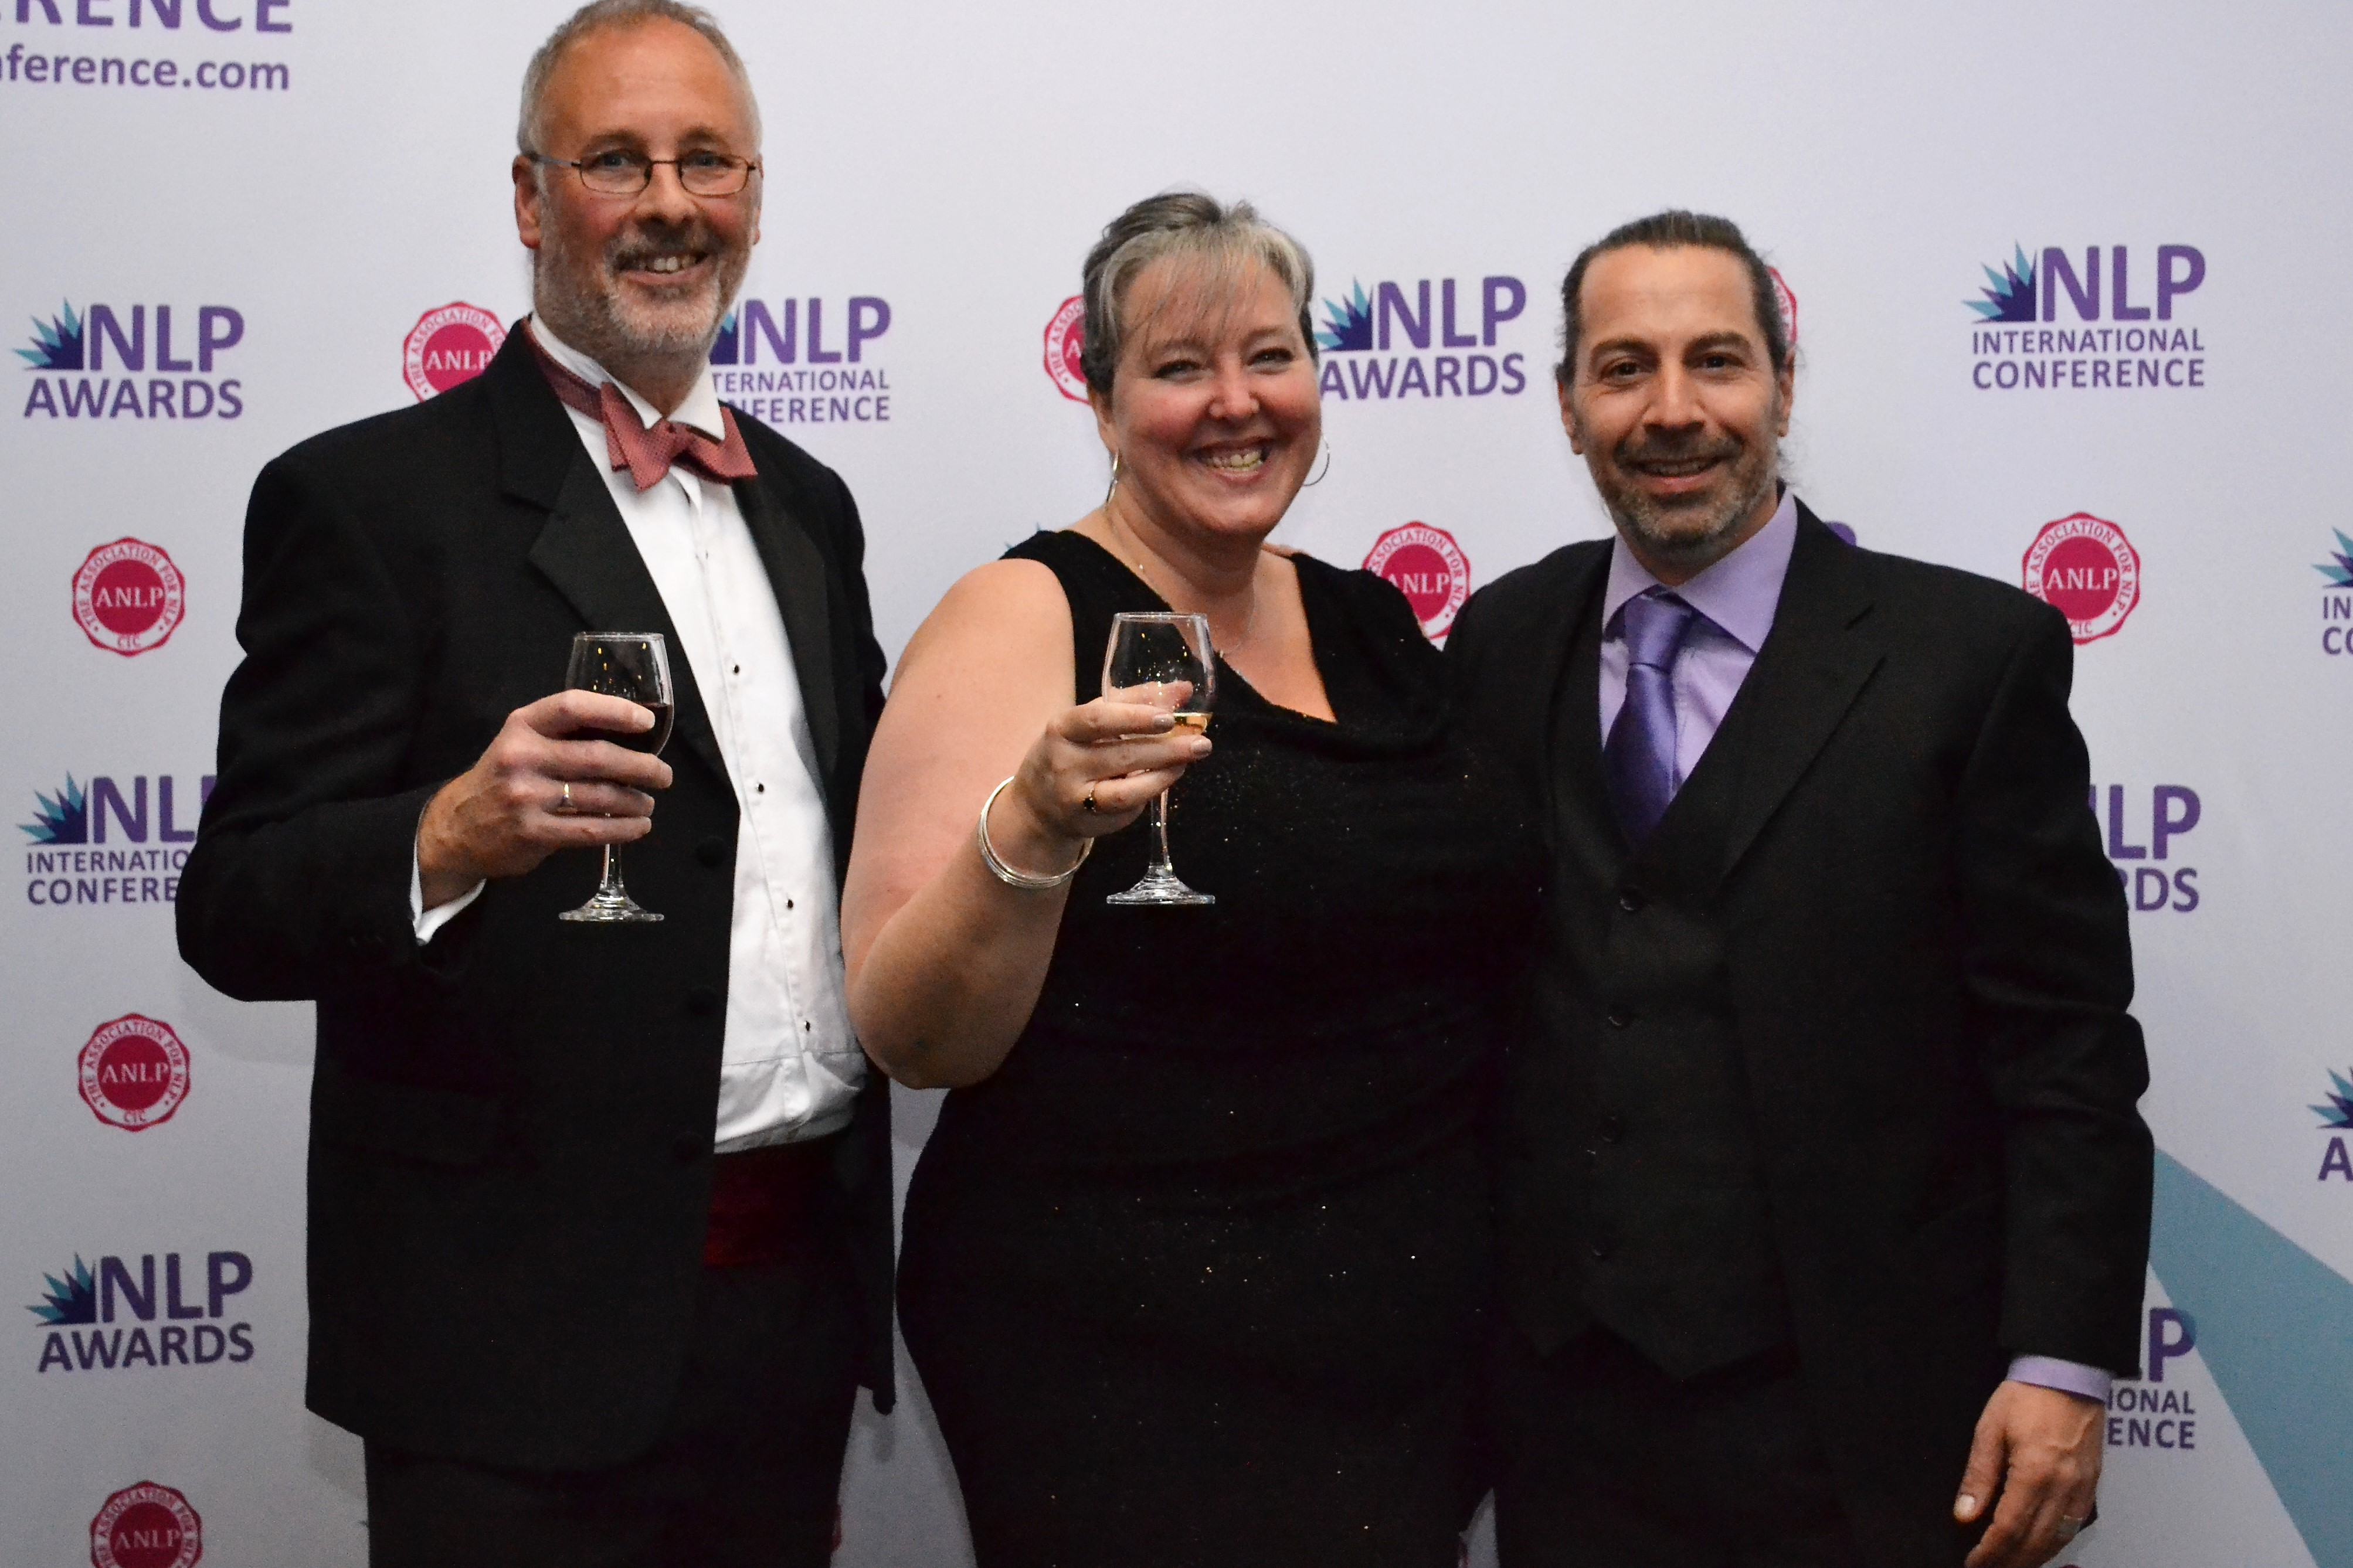 Celebrating at NLP Awards